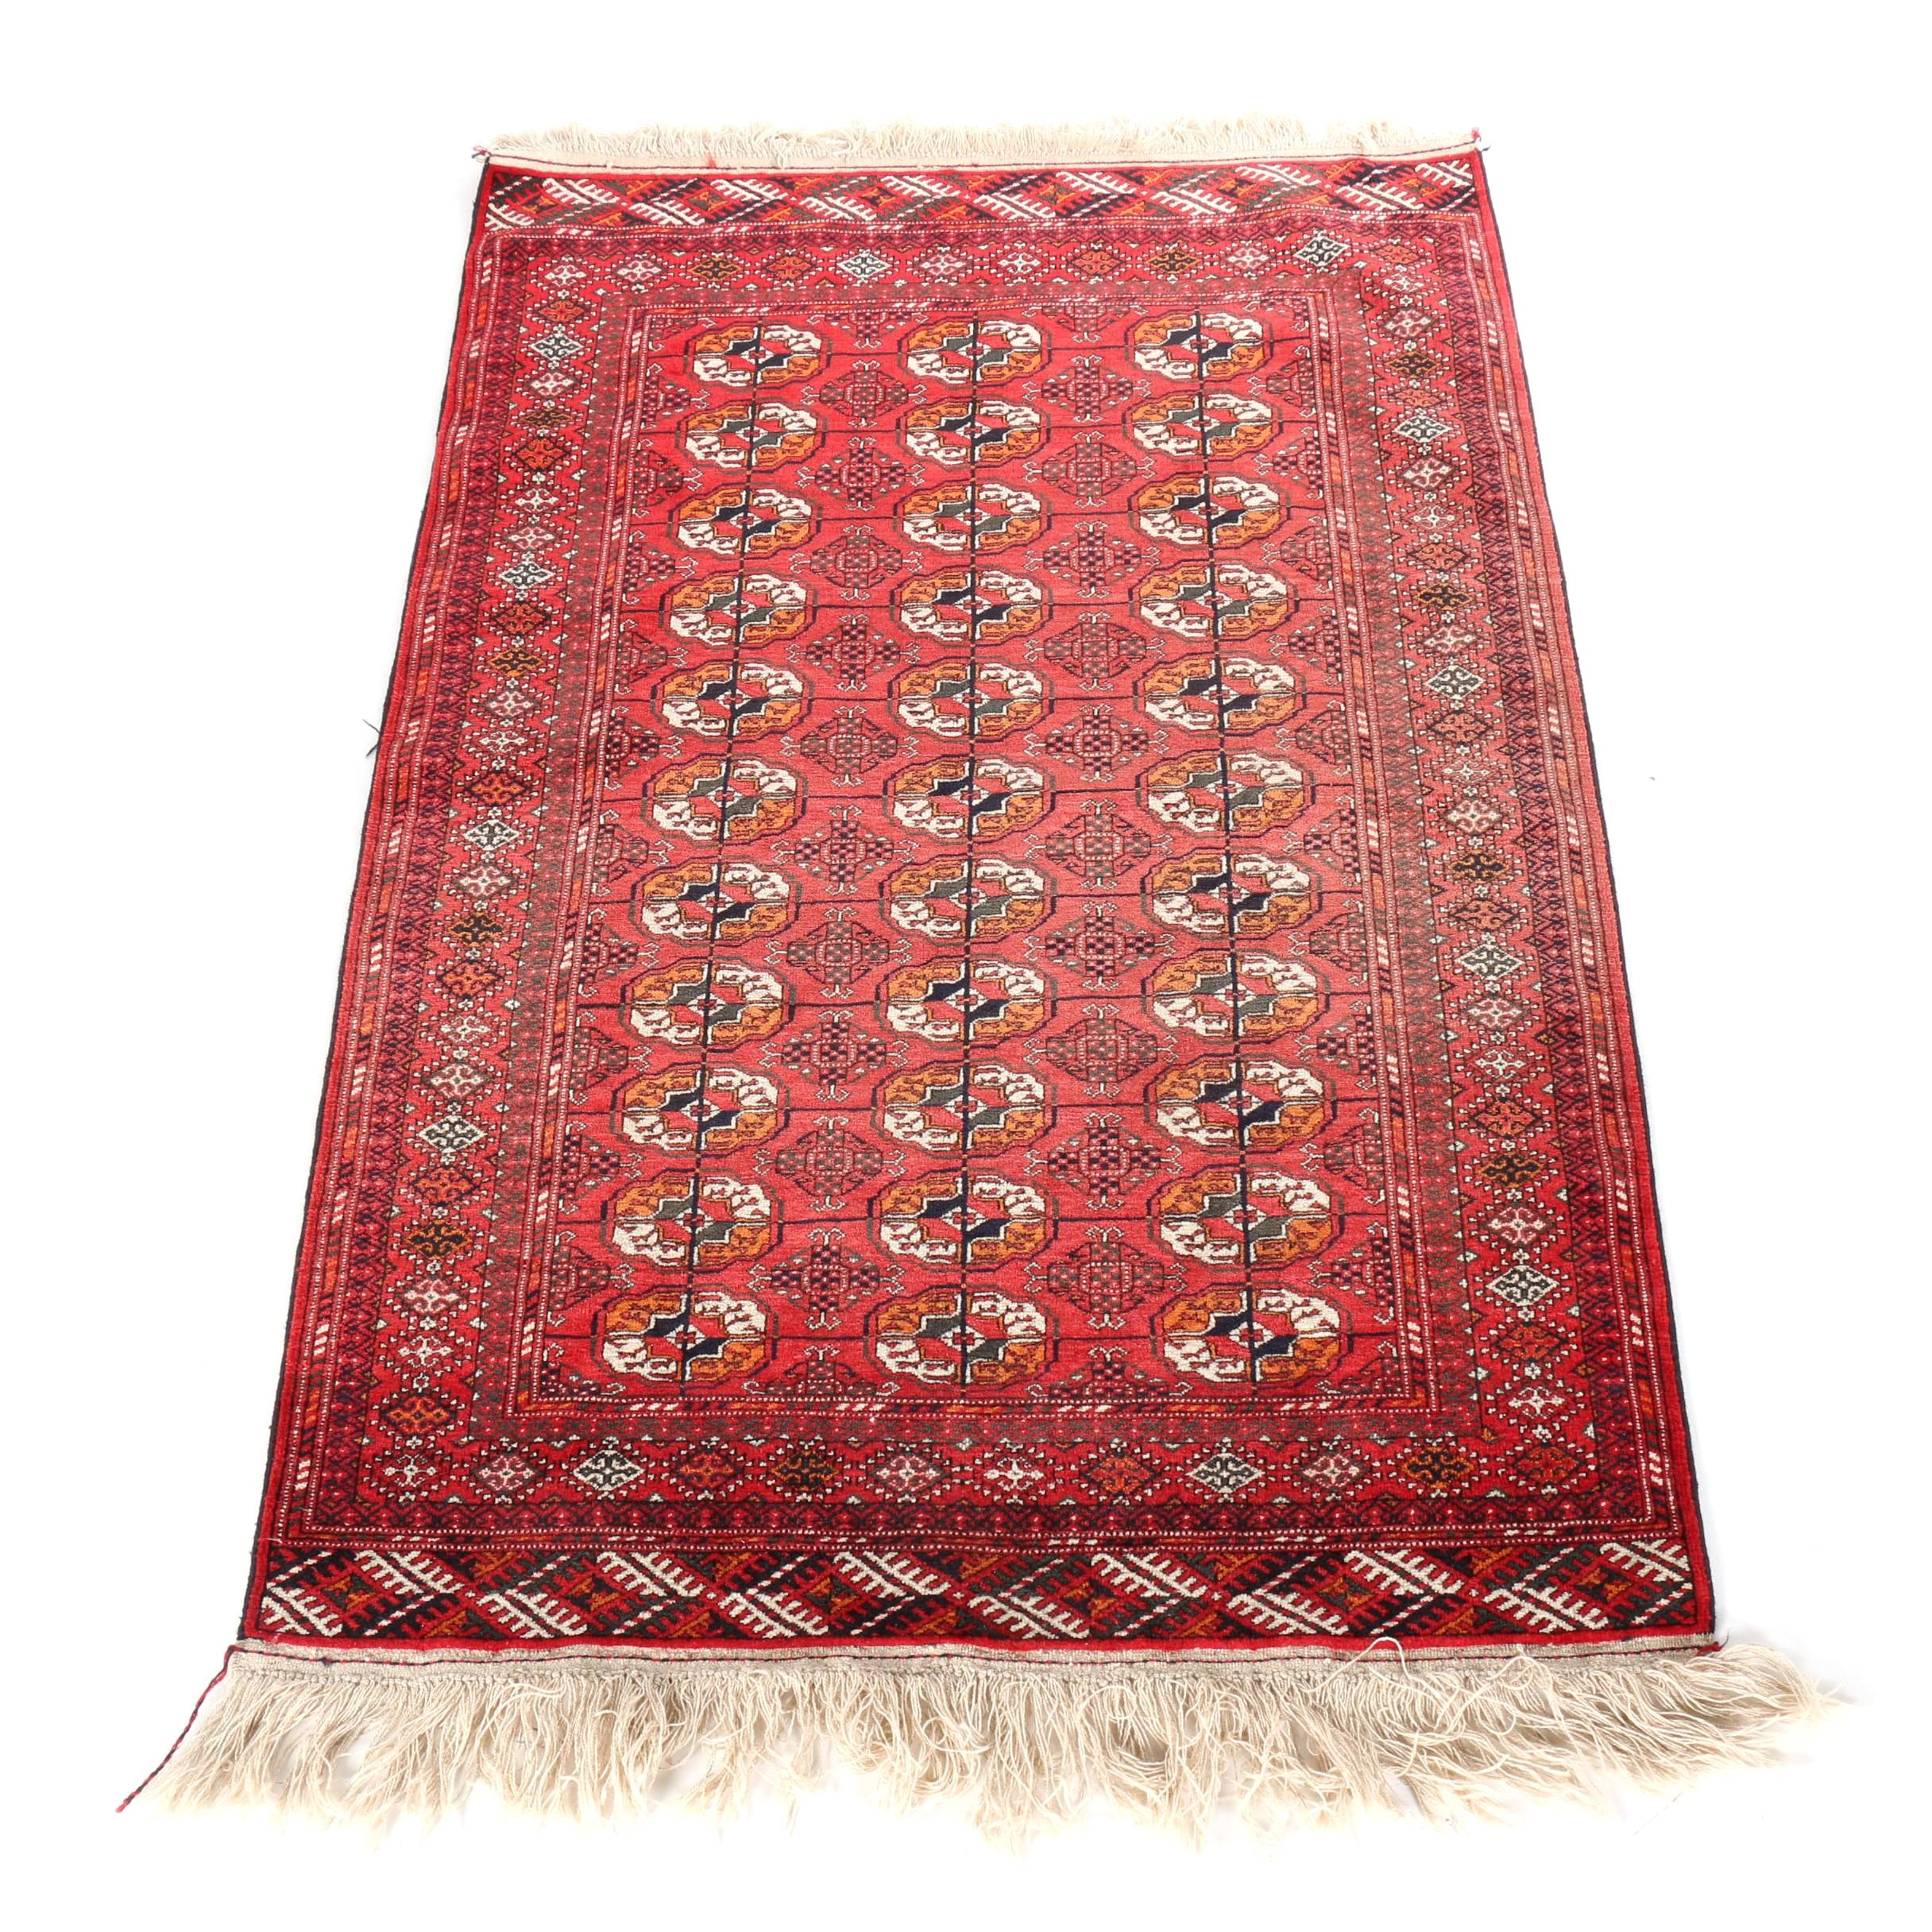 Hand-Knotted Turkmenistan Bokhara Area Rug